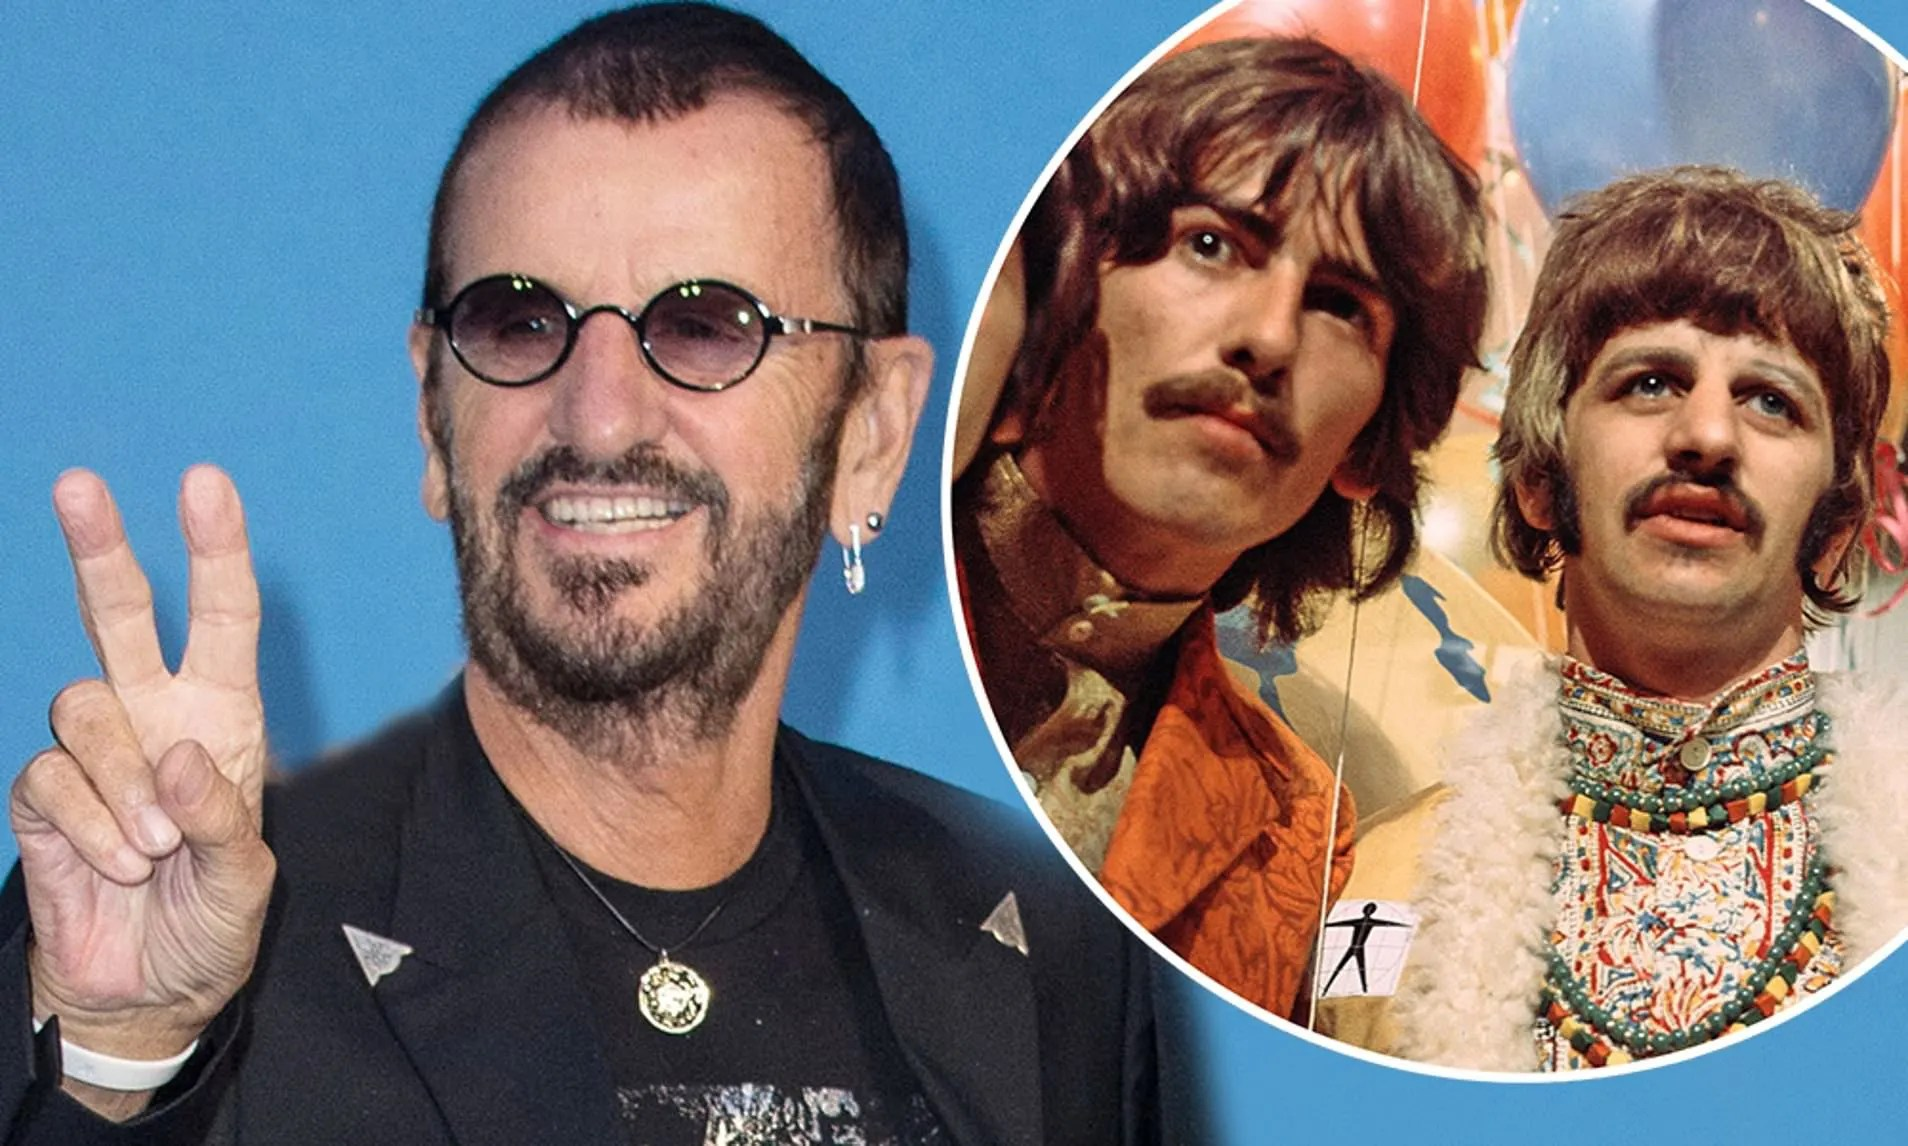 ¿Sabes lo que a Ringo no le gustaba de The Beatles?